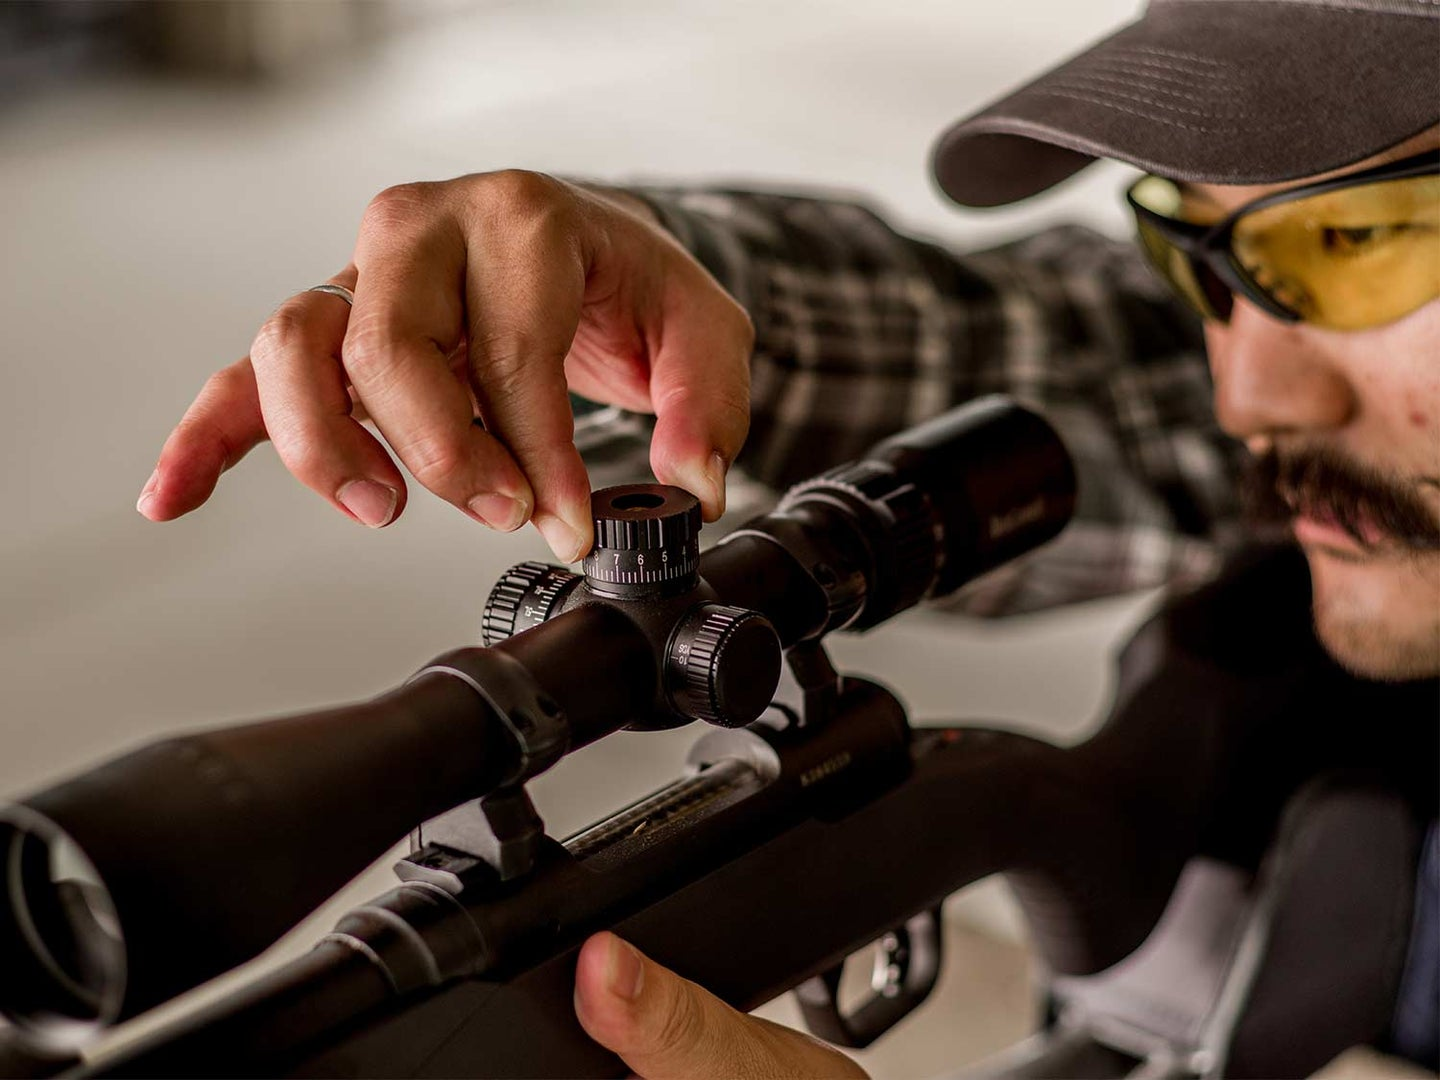 A man in shooting safety goggles adjusting a riflescope.